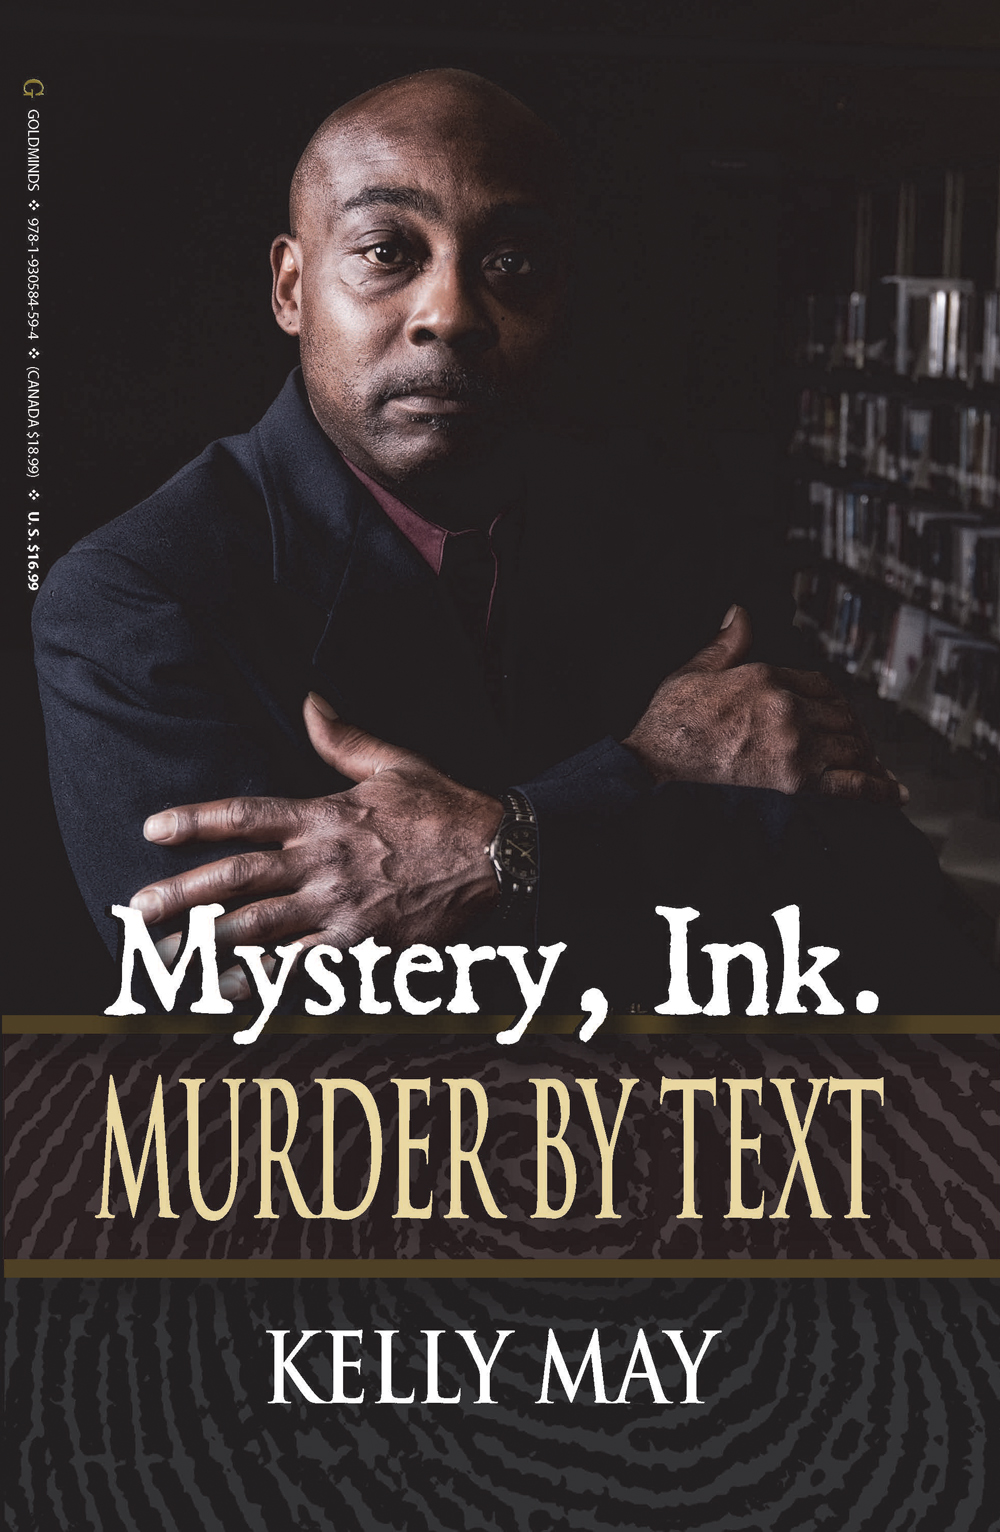 Mystery, Ink.: Murder By Text